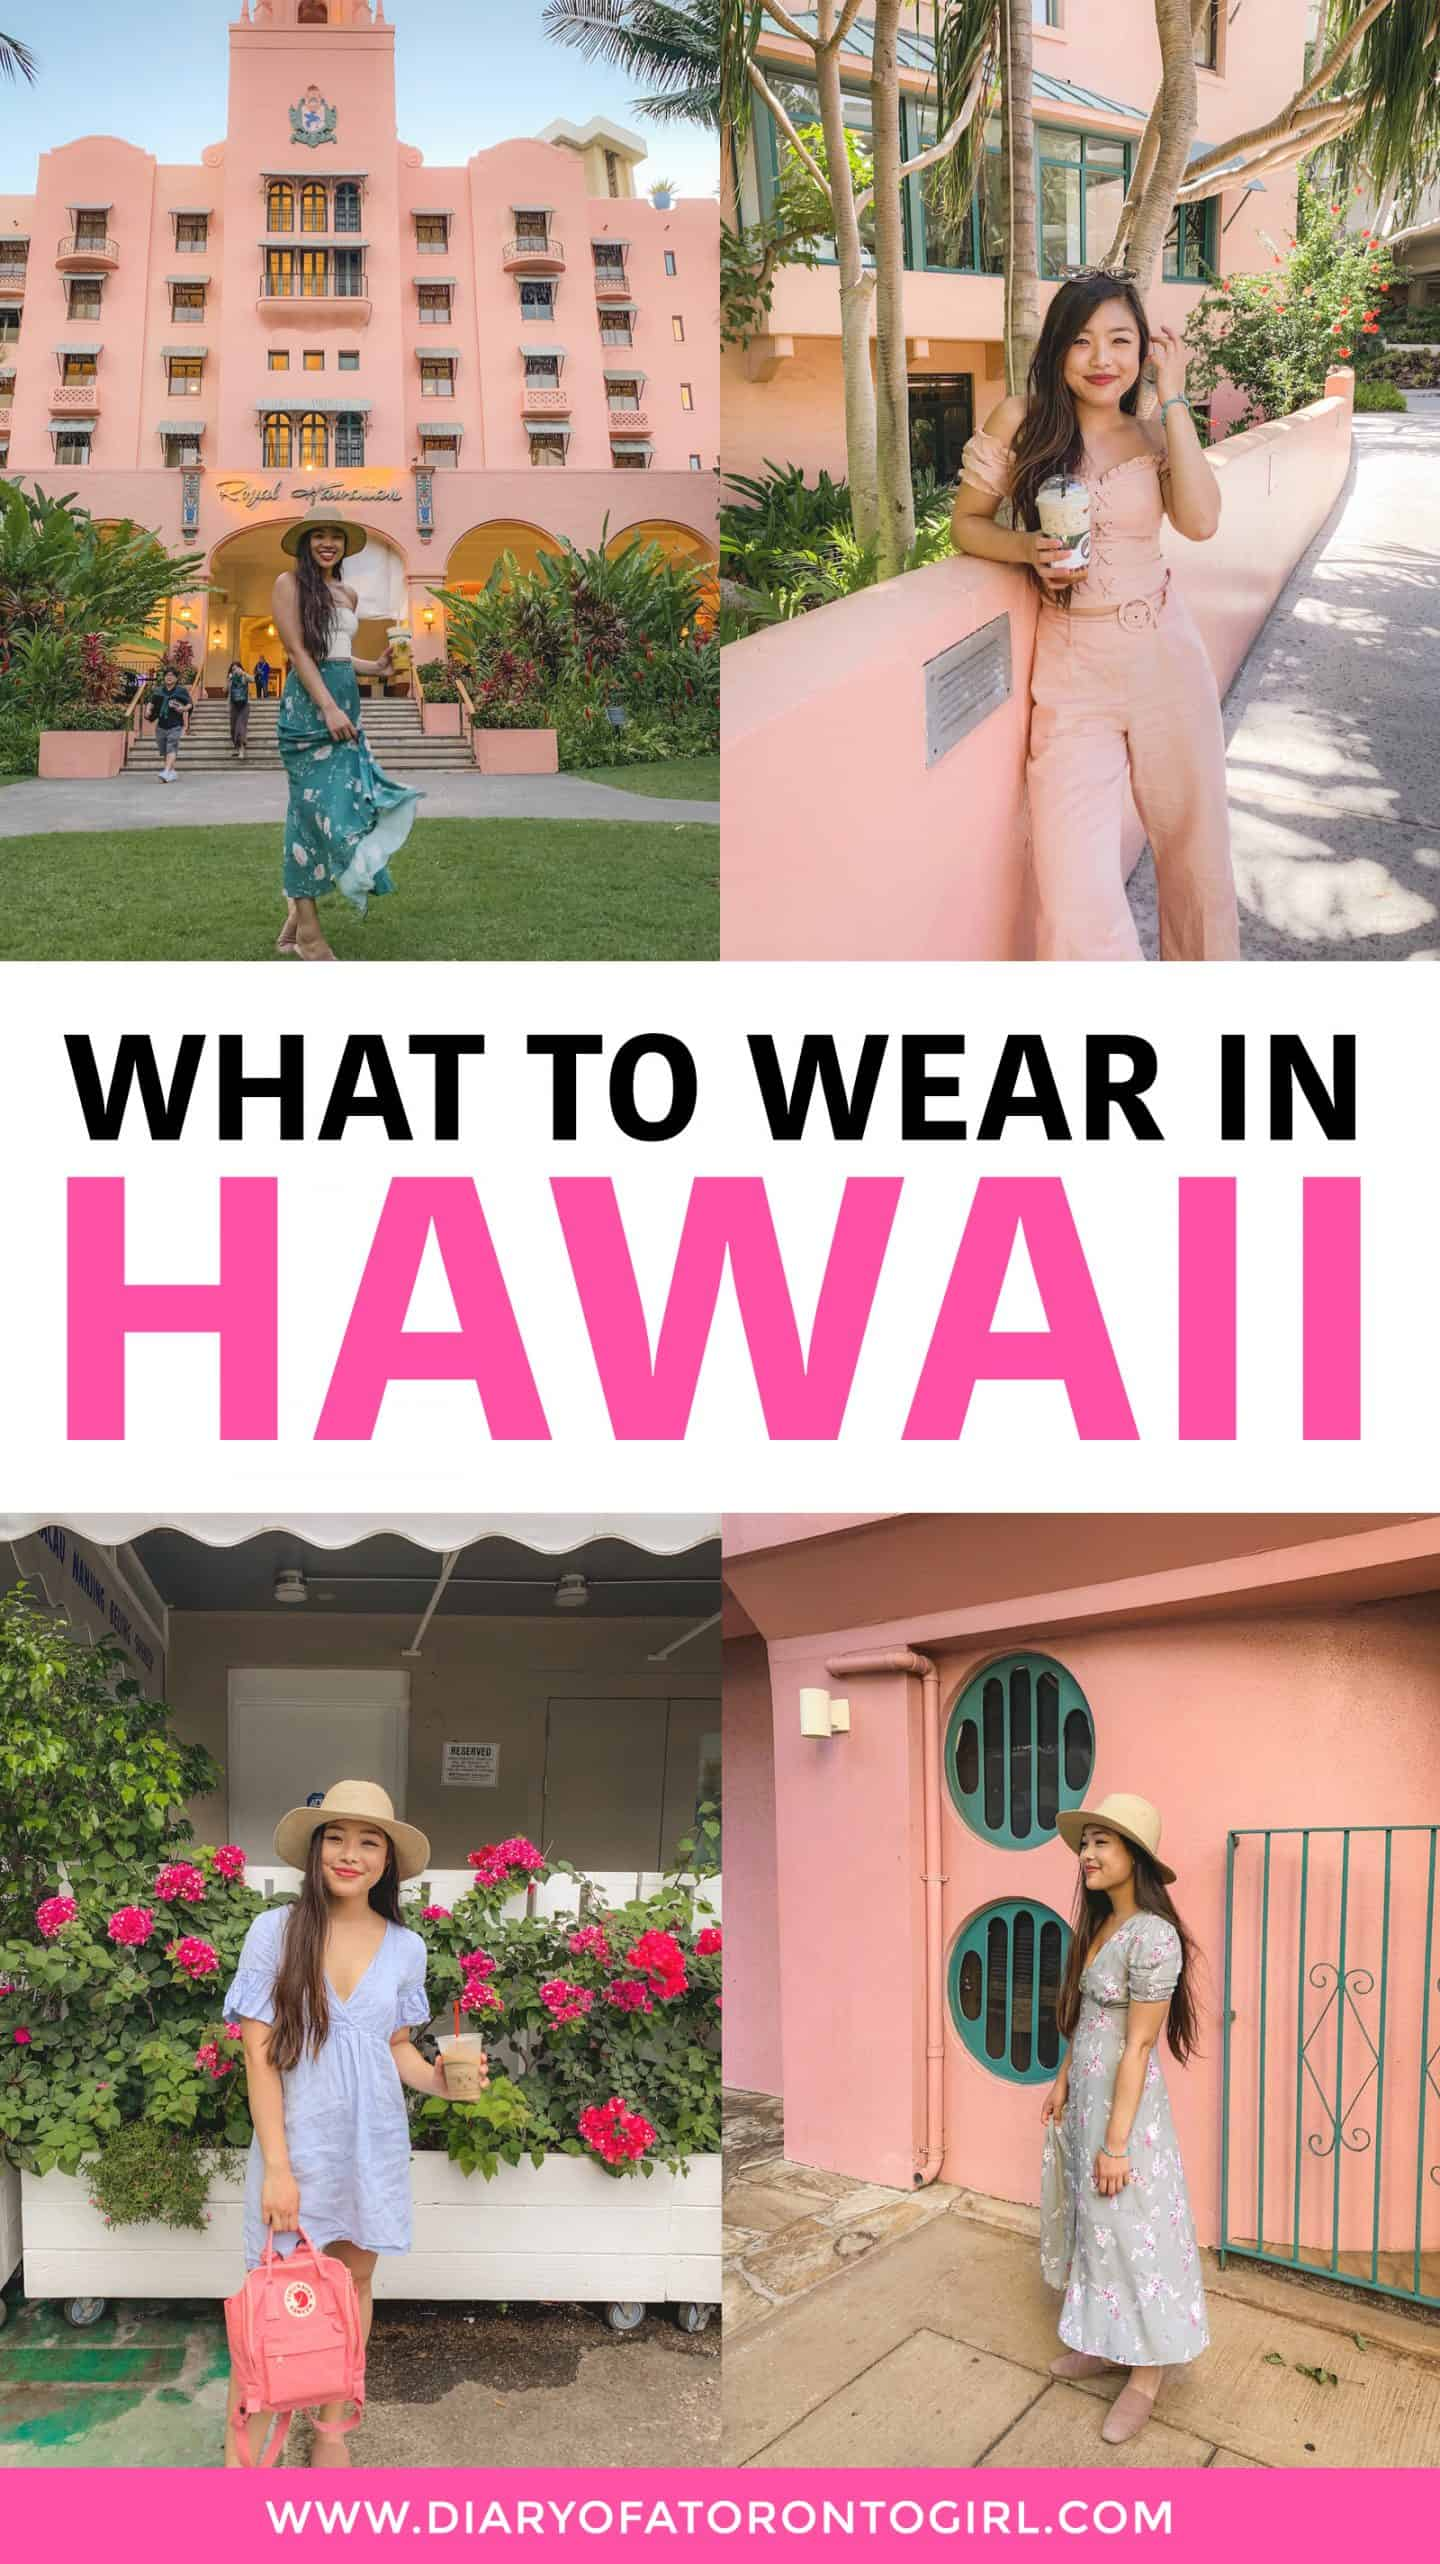 Planning a trip to Hawaii? Here's your ultimate guide on what to wear and what to pack for your beach vacation!